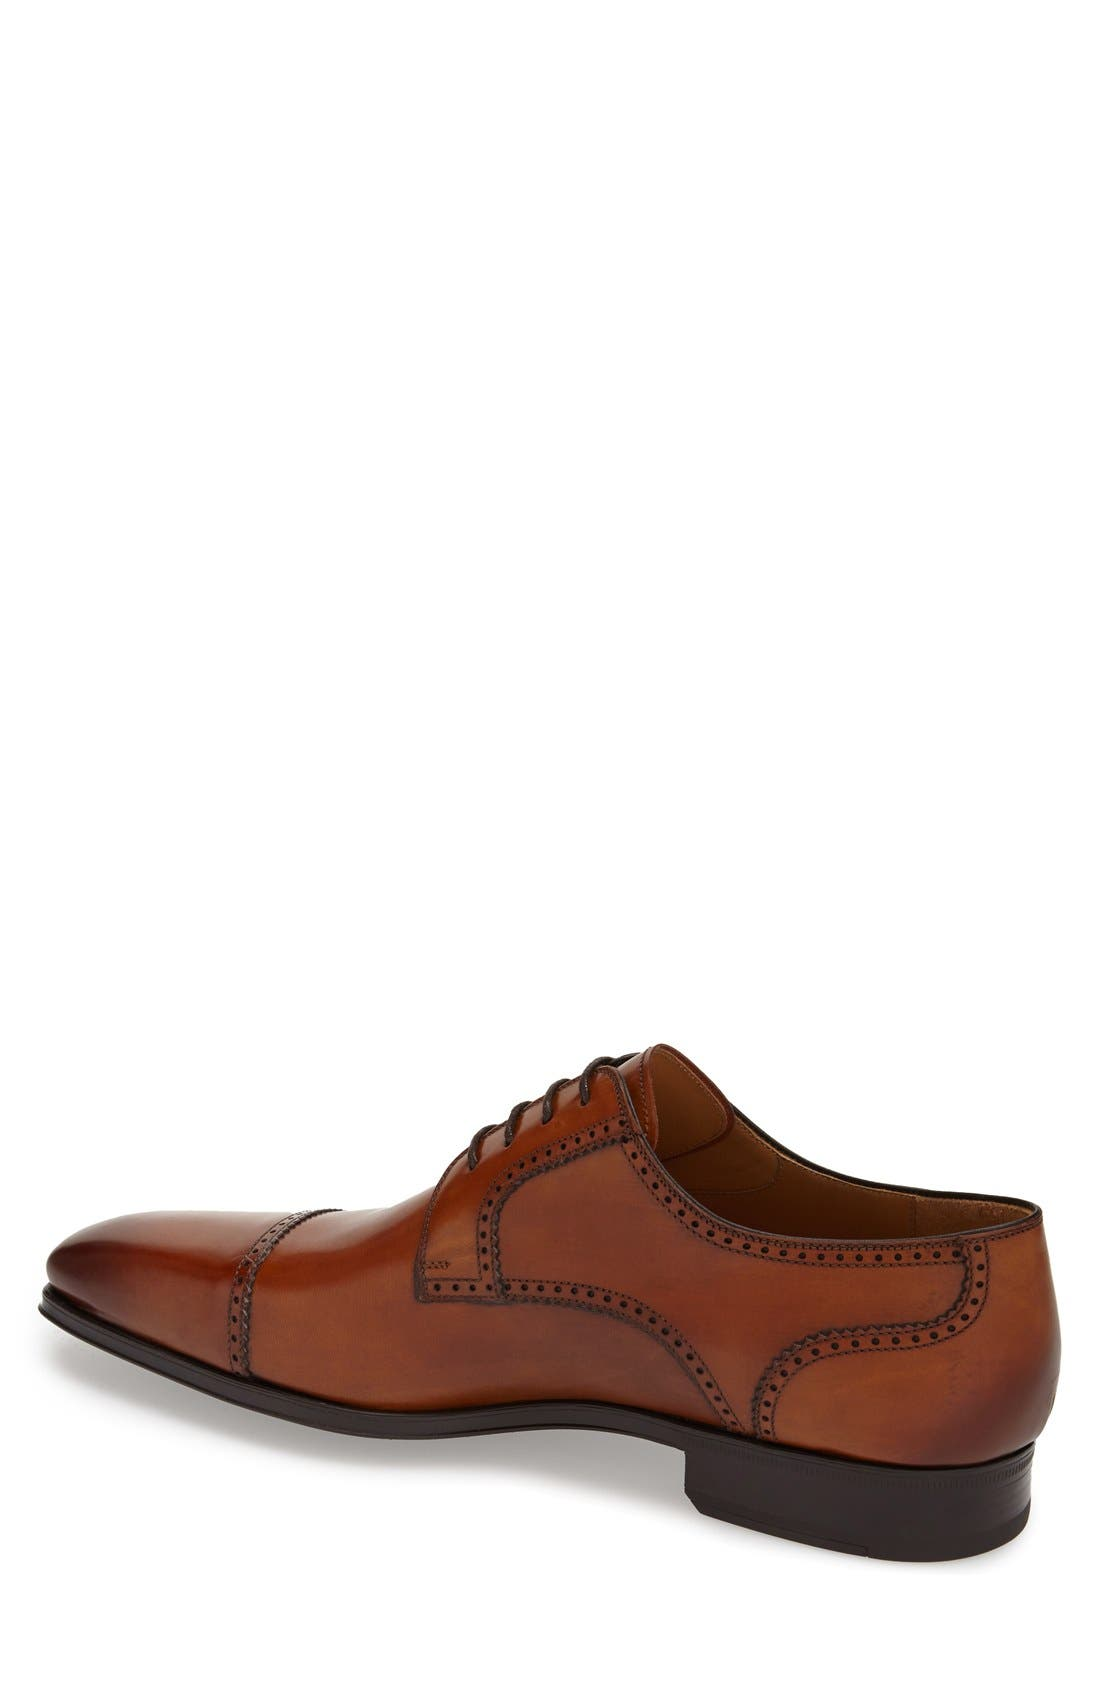 MAGNANNI, 'Carlito' Cap Toe Derby, Alternate thumbnail 2, color, 219